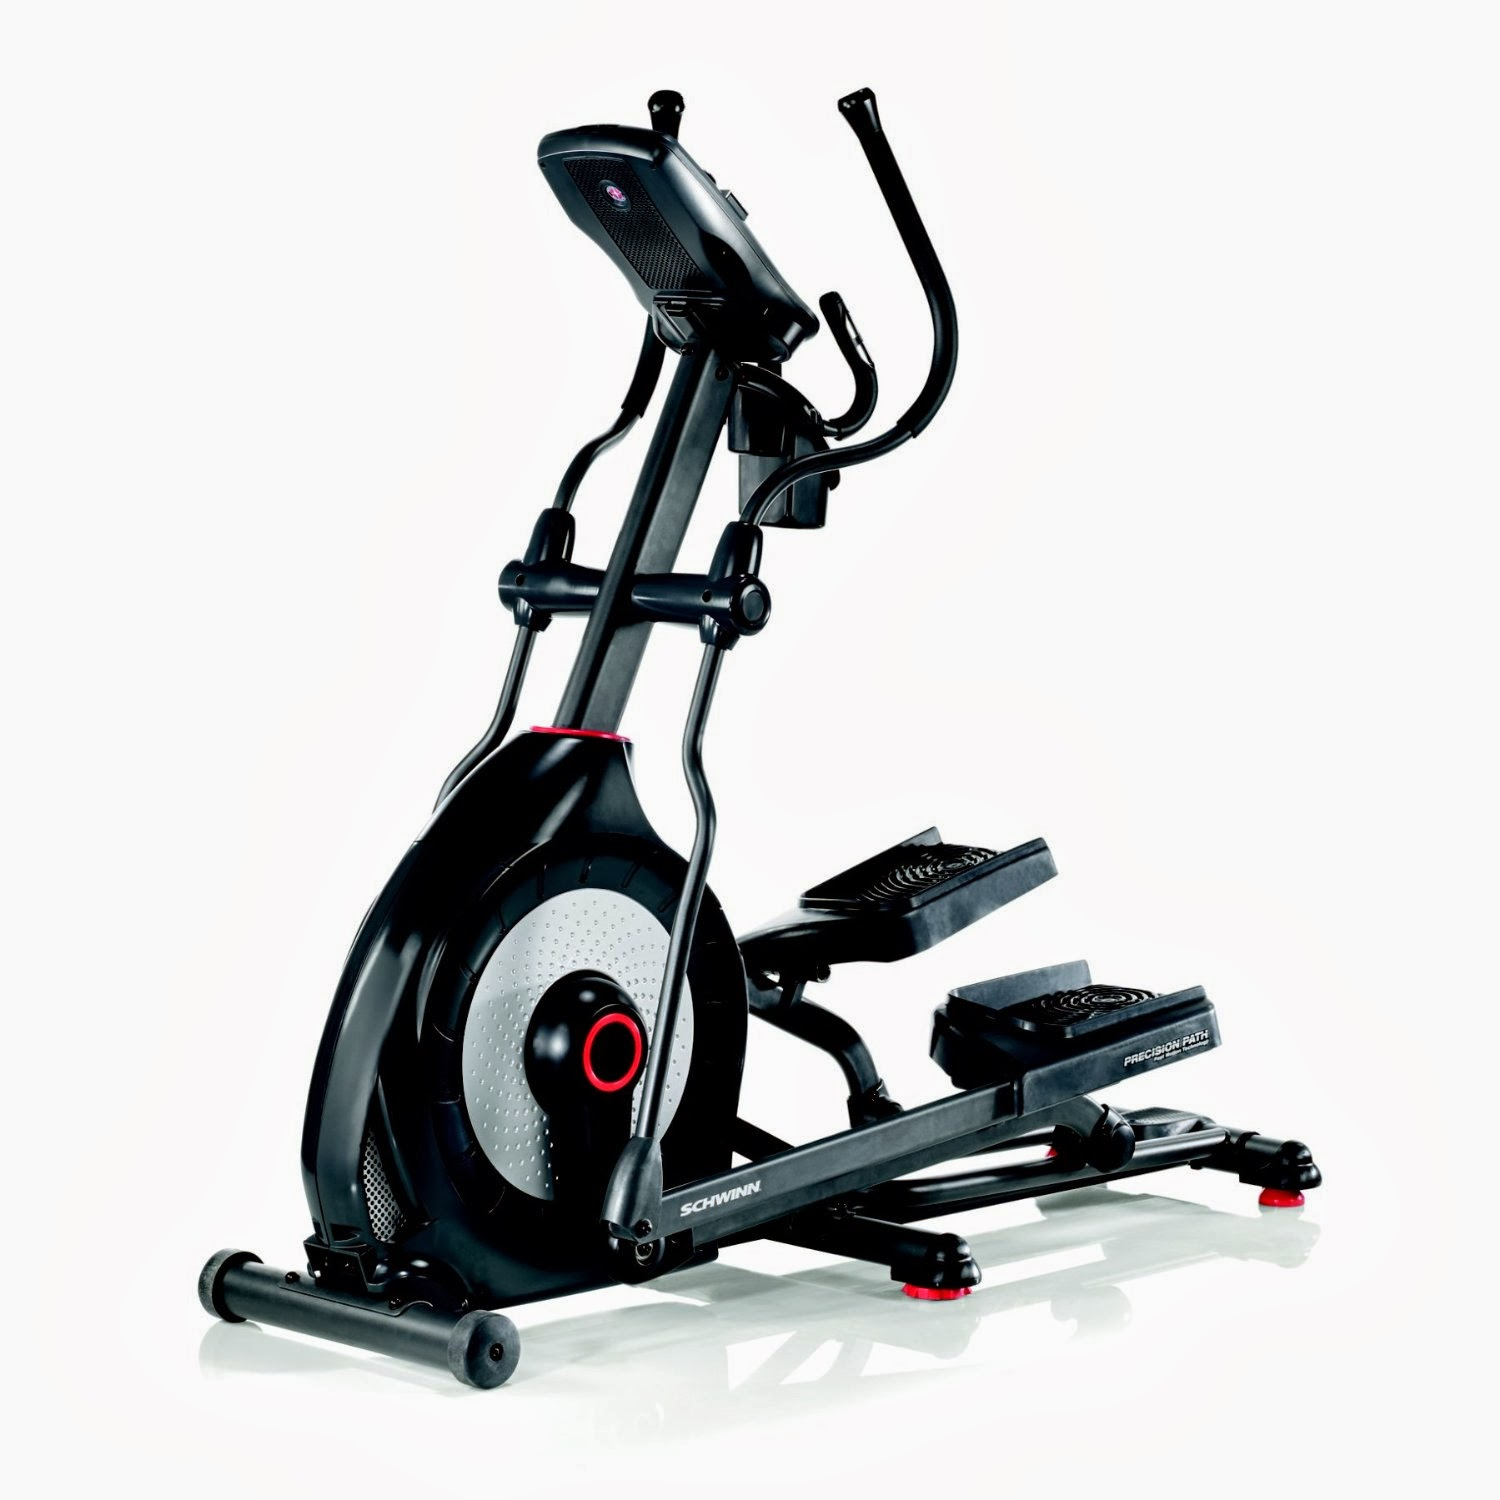 Schwinn 470 Elliptical Trainer Machine, picture, review features & specifications, compare with Sole E95 Elliptical Trainer